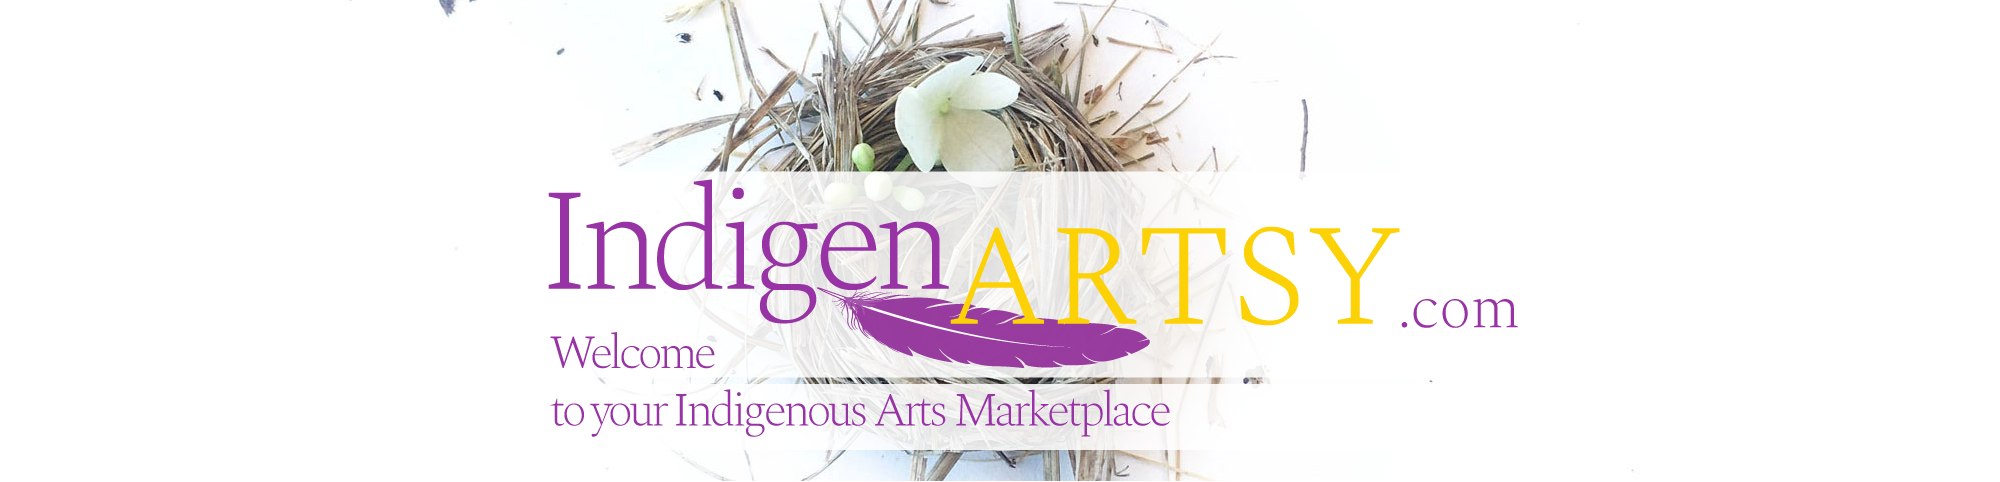 Indigenartsy, marketplace, indigenous arts, native arts, first nations art